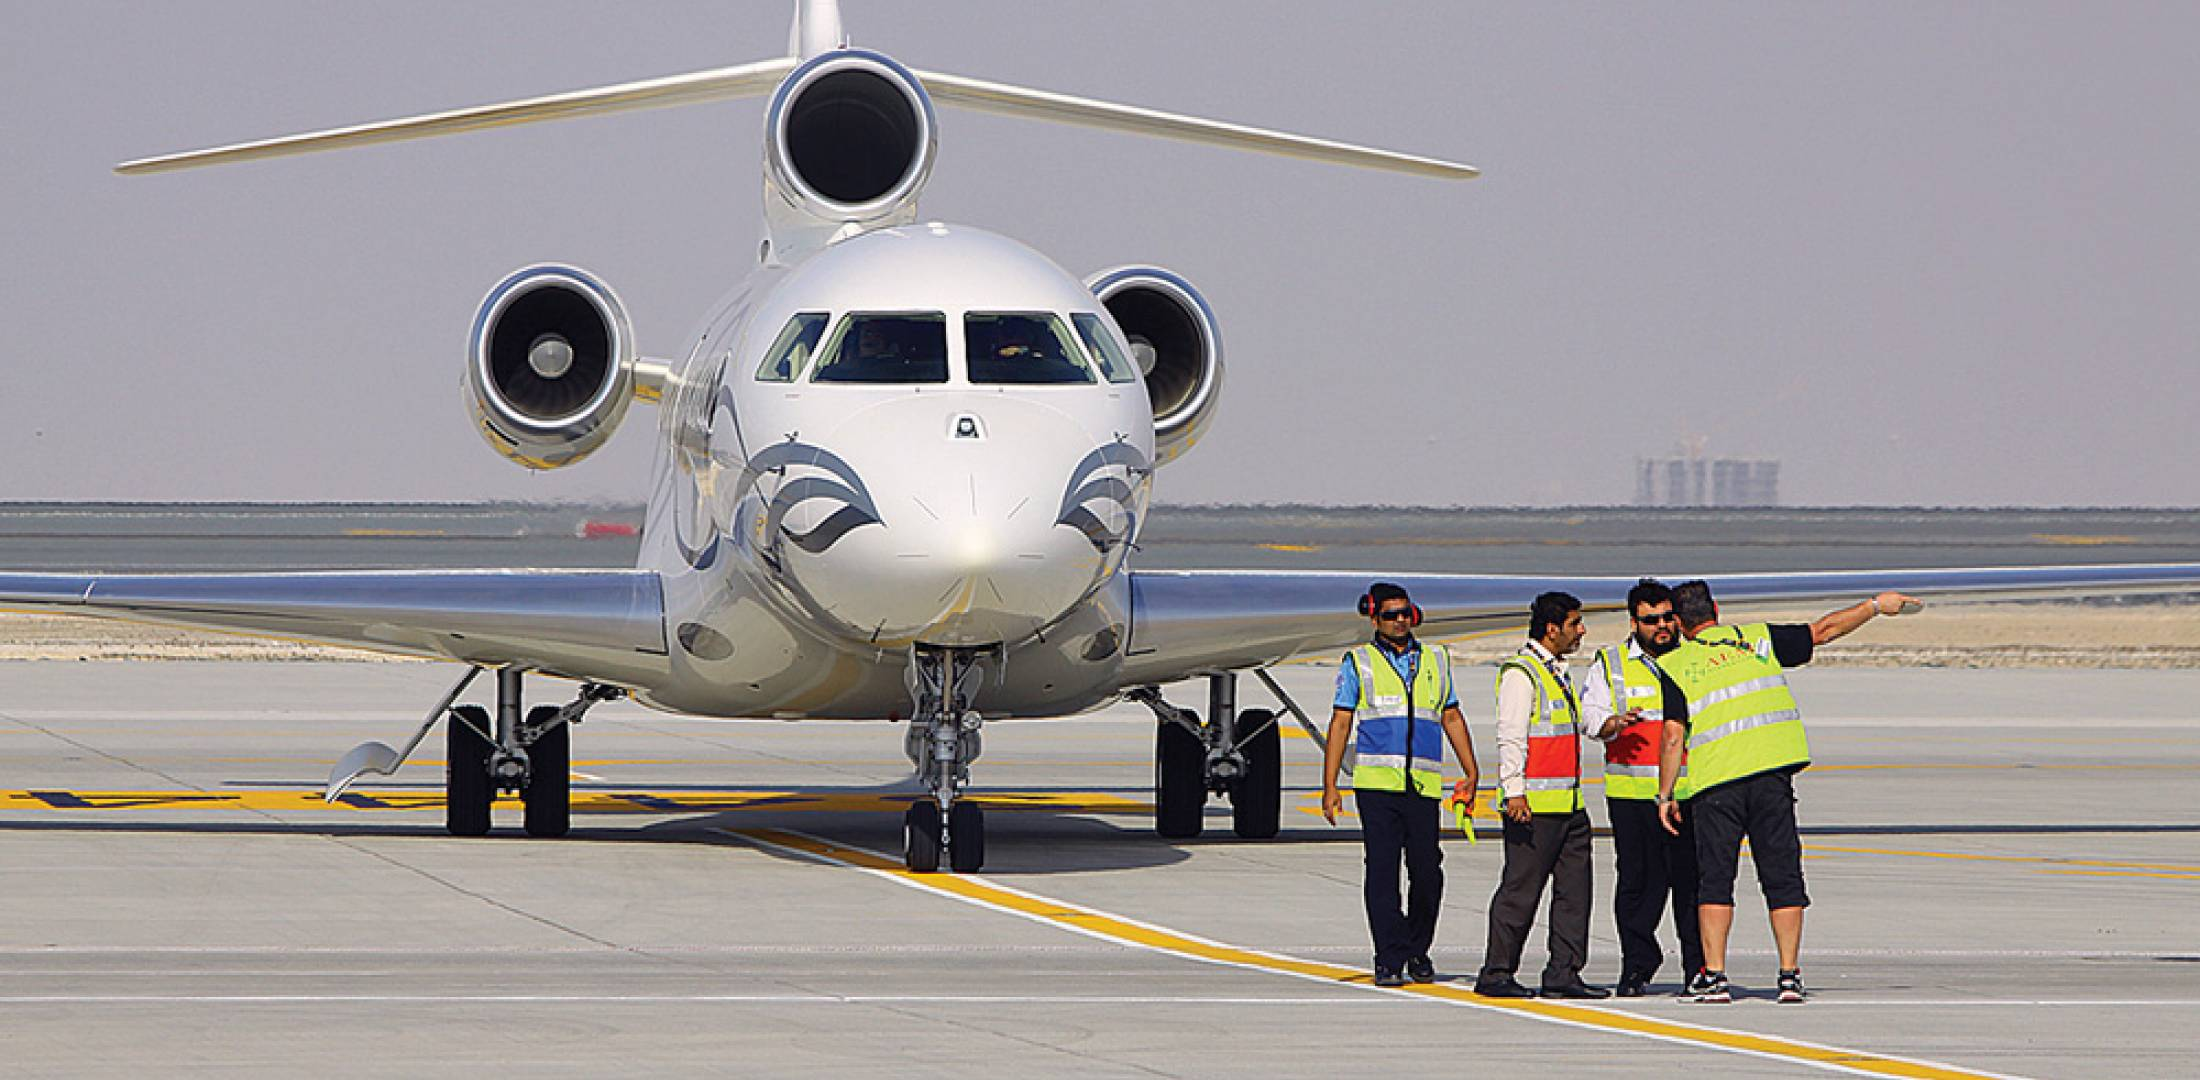 The owner of this Falcon 7X, shown here on the ramp of Al Maktoum International Airport soon after its arrival for display at MEBA, will be able to simply turn on his cellphone and start using it while in flight, if he opts to buy OnAir's mobile equipment when available in 2014.